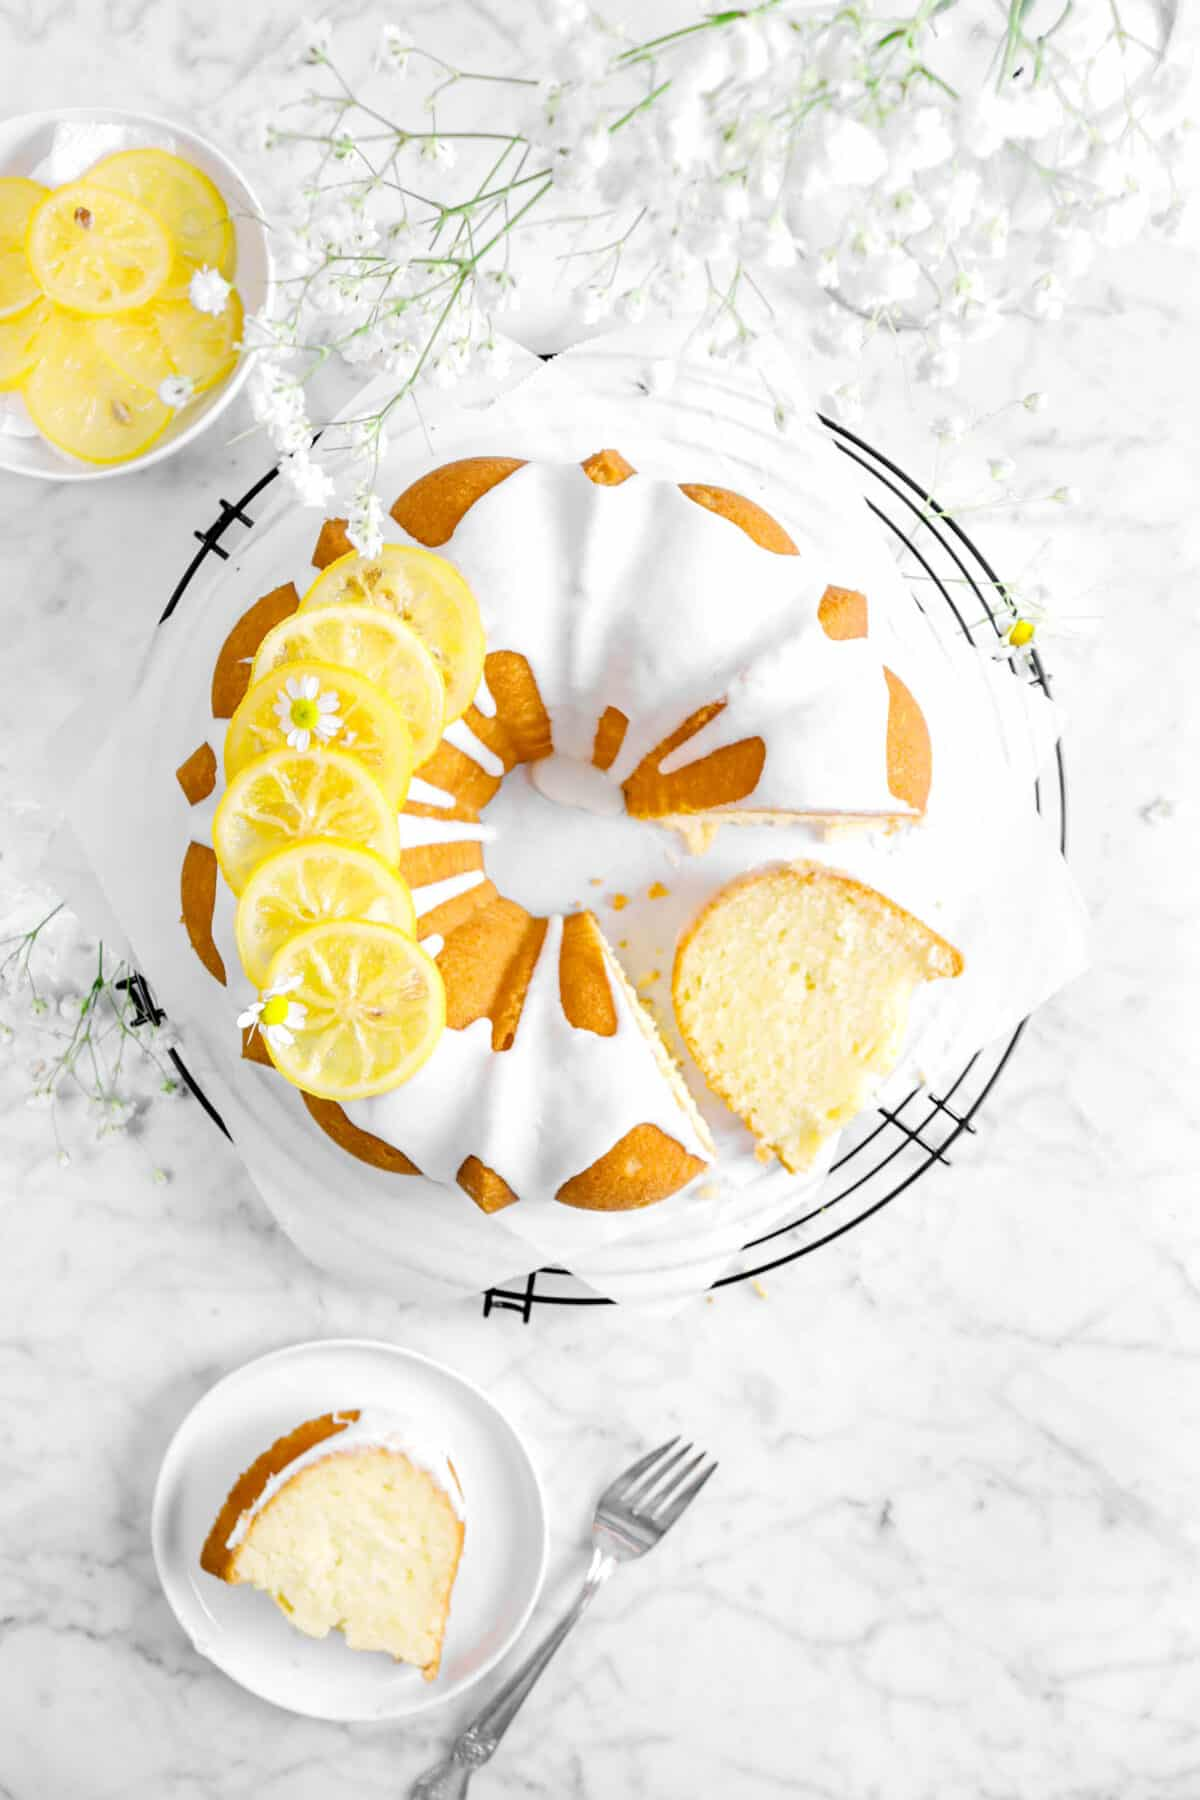 pound cake with candied lemon slices and glaze on top on a cooling rack with a slice on a white plate and slice on coolinf rack